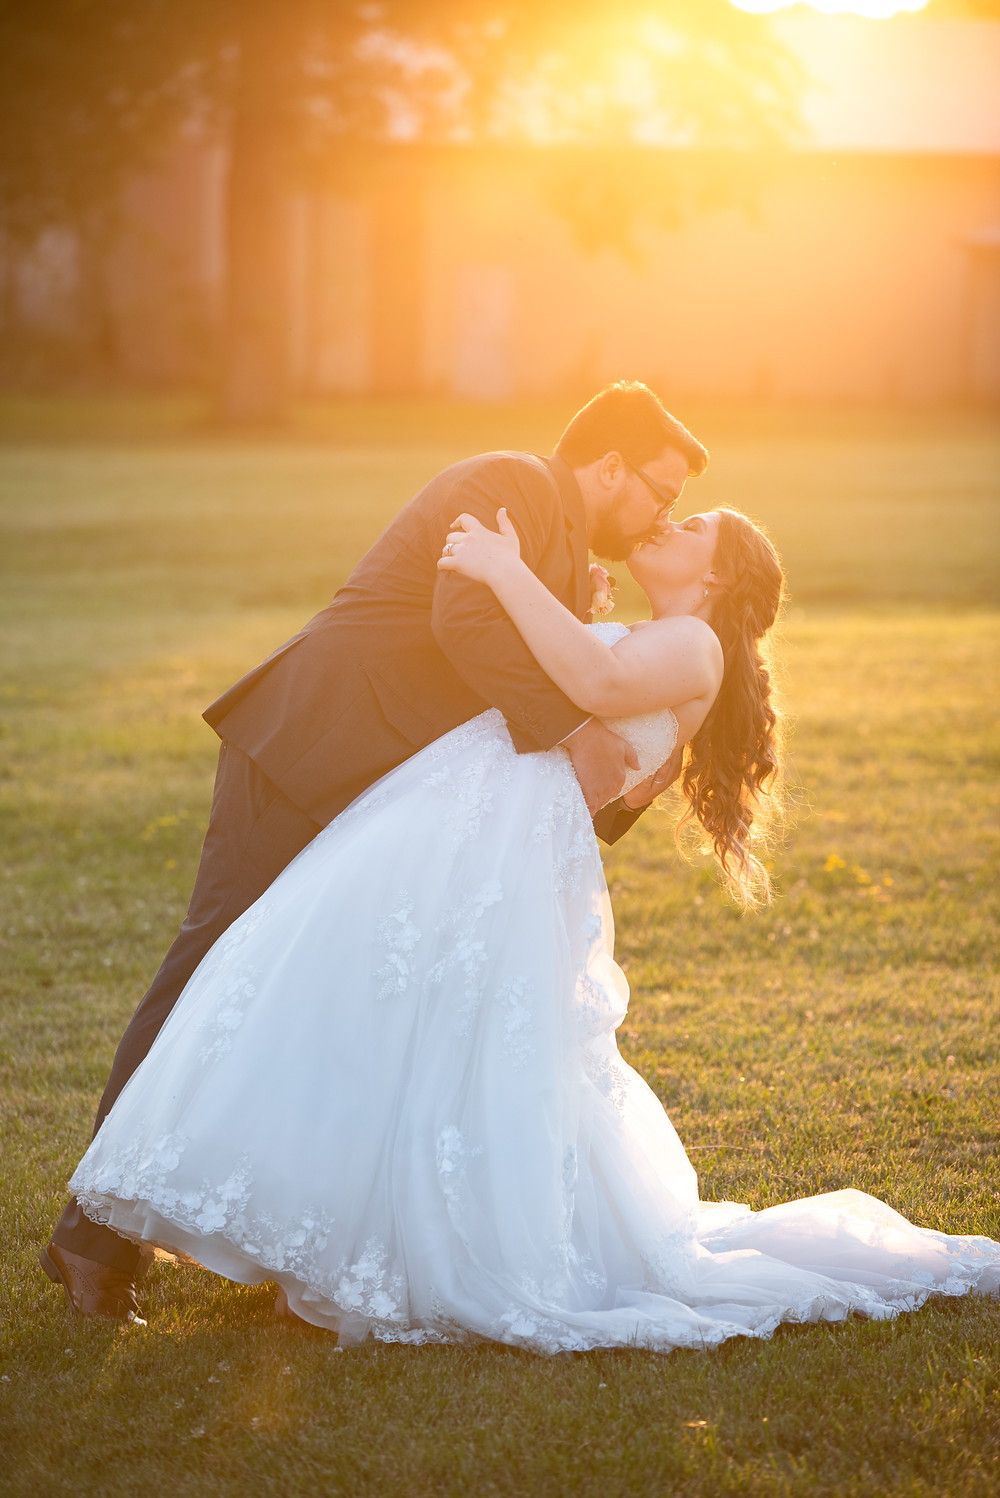 Golden hour sunset portraits at Drake's Landing banquet center in Canfield, OH